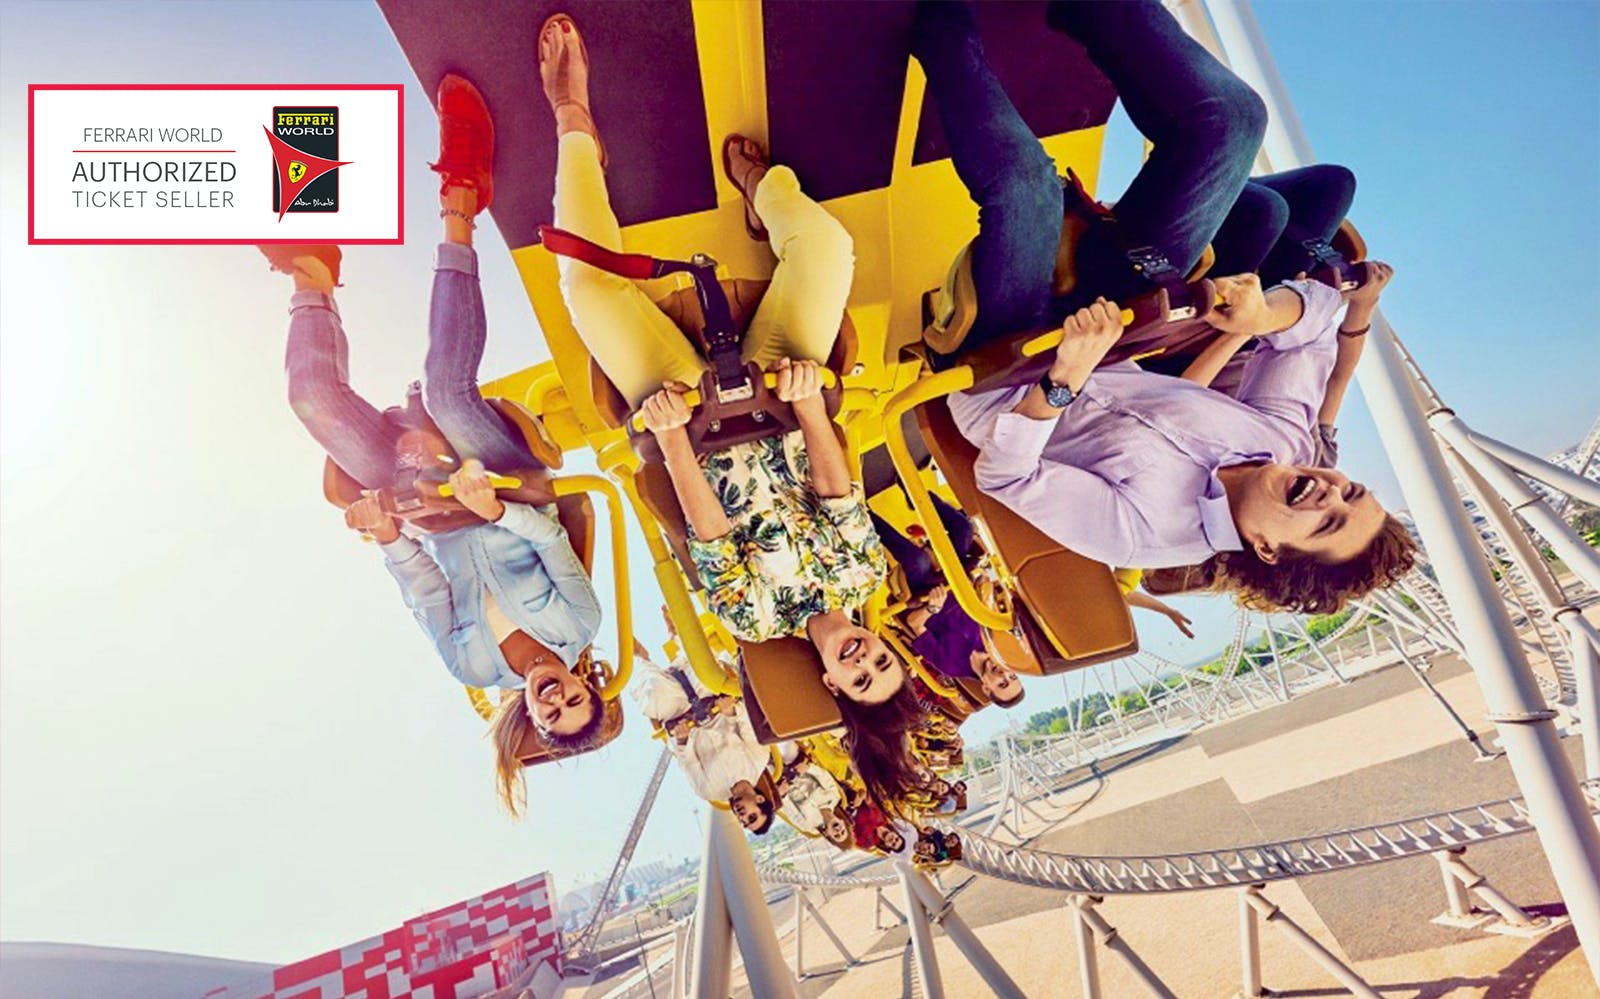 Ferrari World Tickets with All Ride Quick Pass